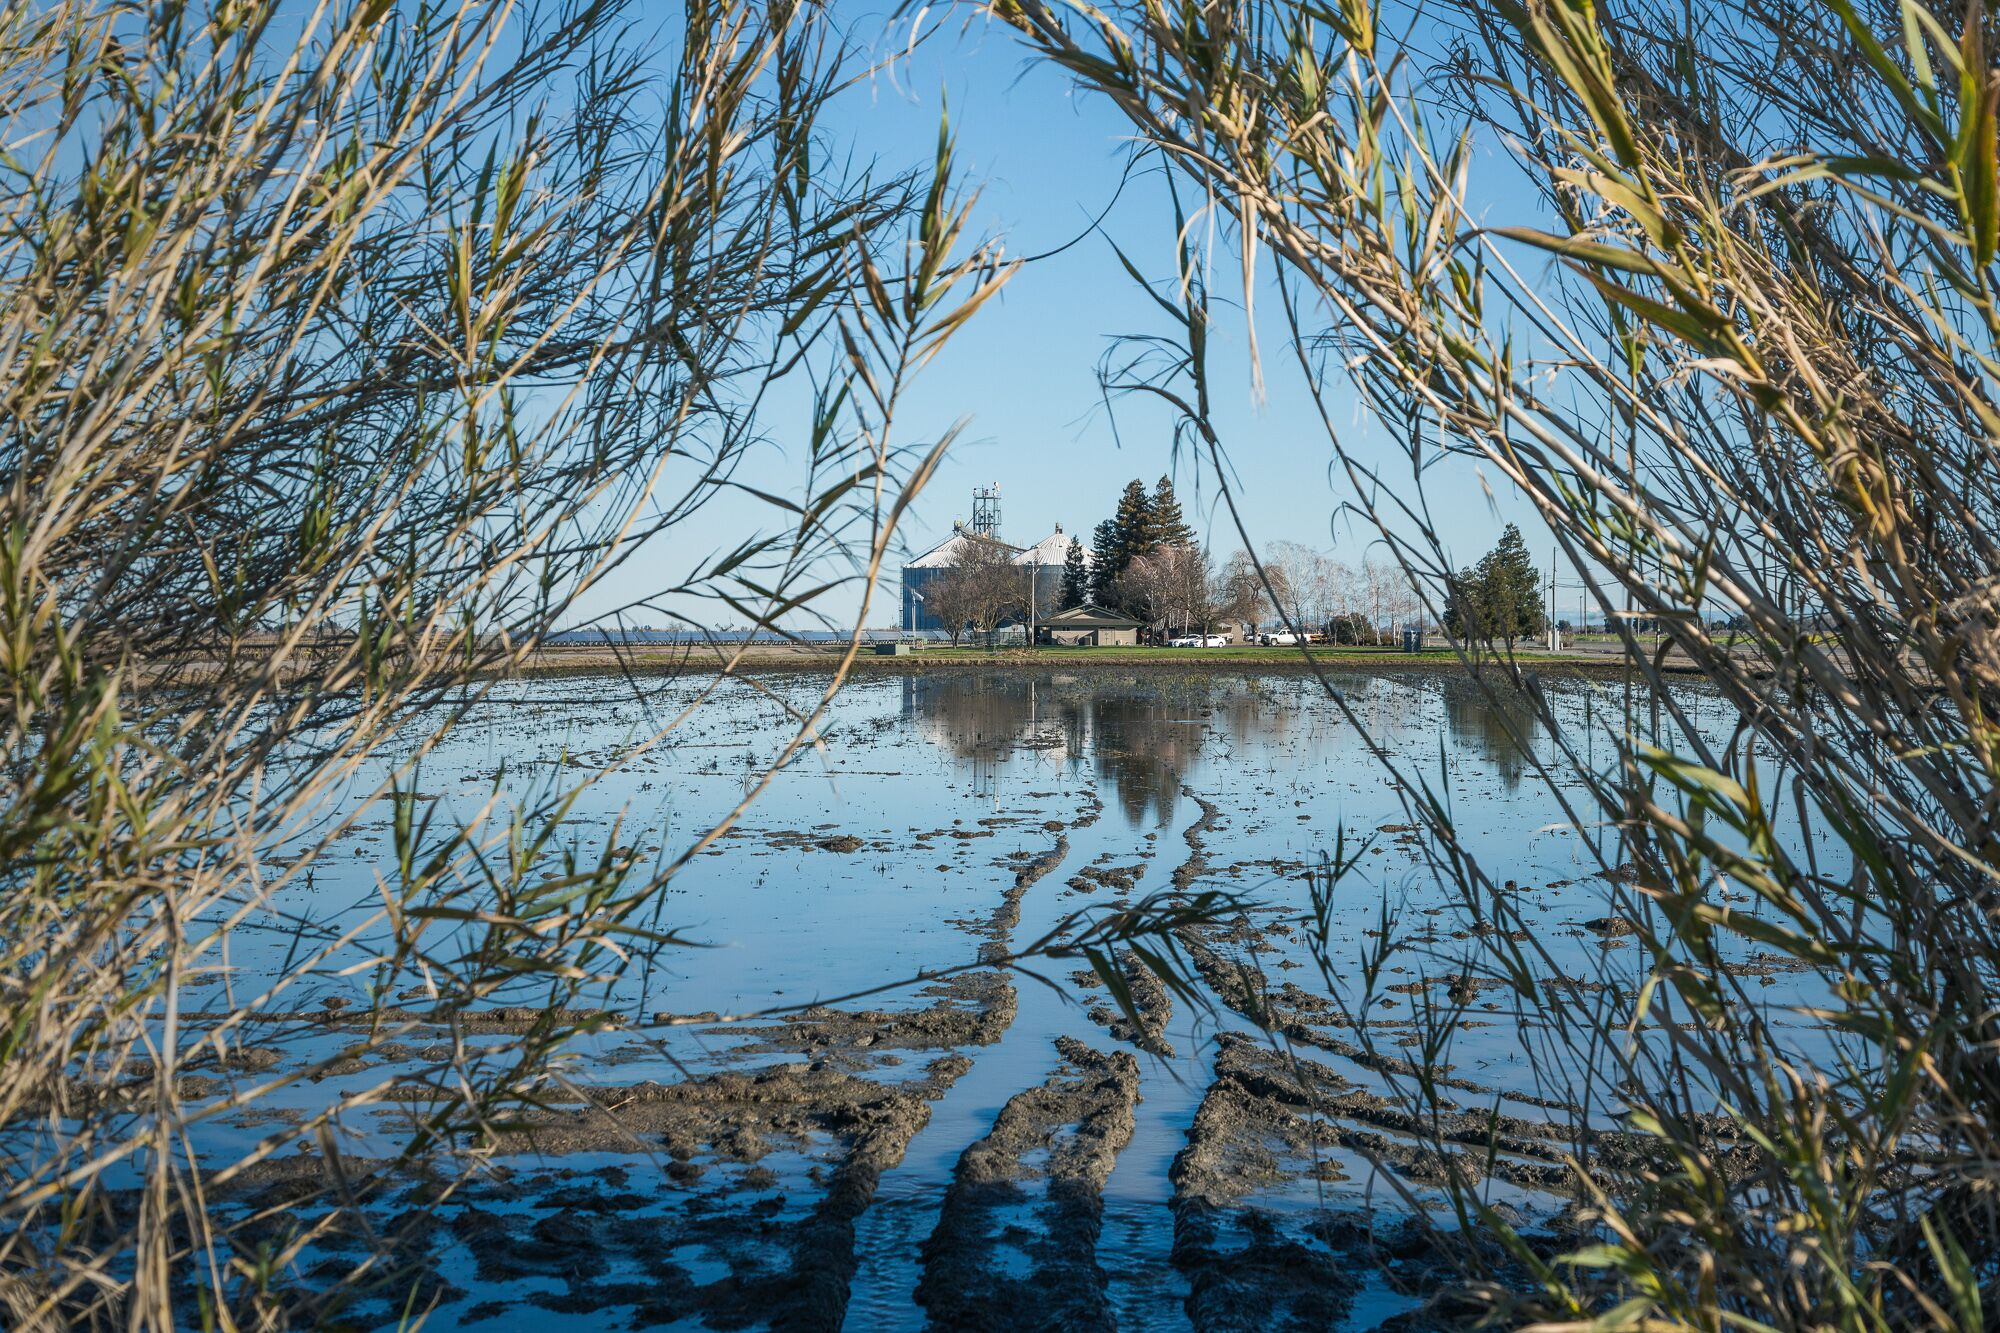 In flooded rice fields like this one near the Sacramento River, the shallow, still water provides the perfect conditions for both algae and zooplankton to proliferate.